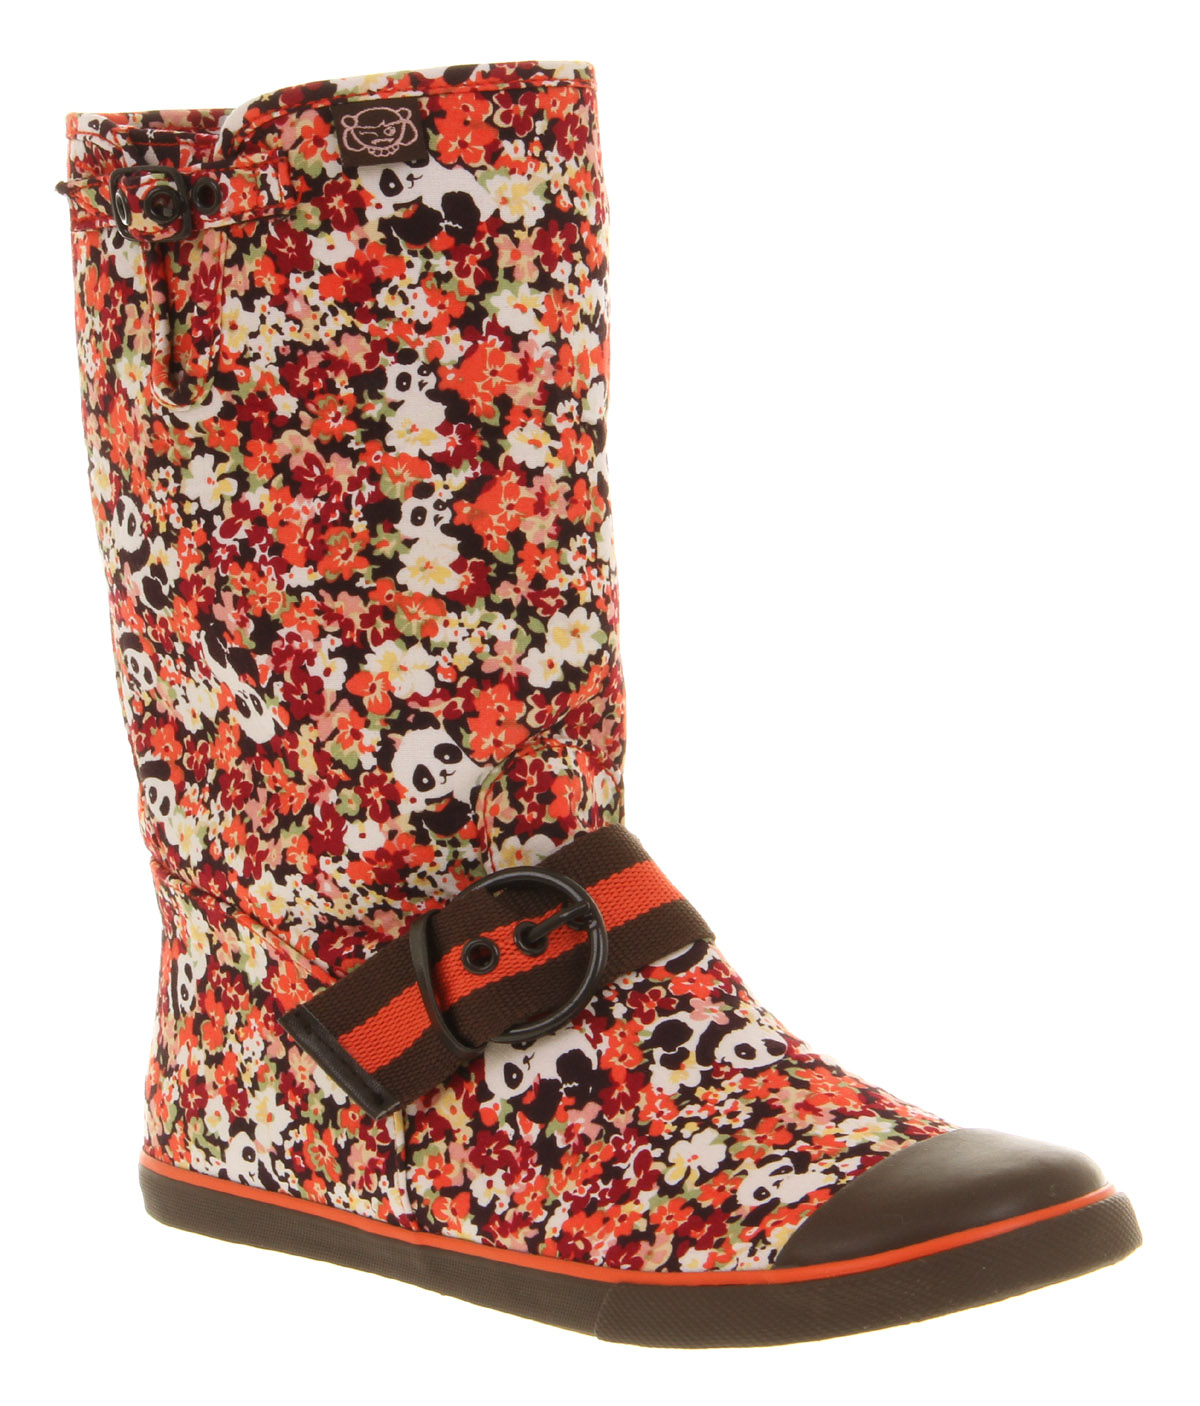 Womens-Sugar-Graphic-Boot-Panda-Print-Boots